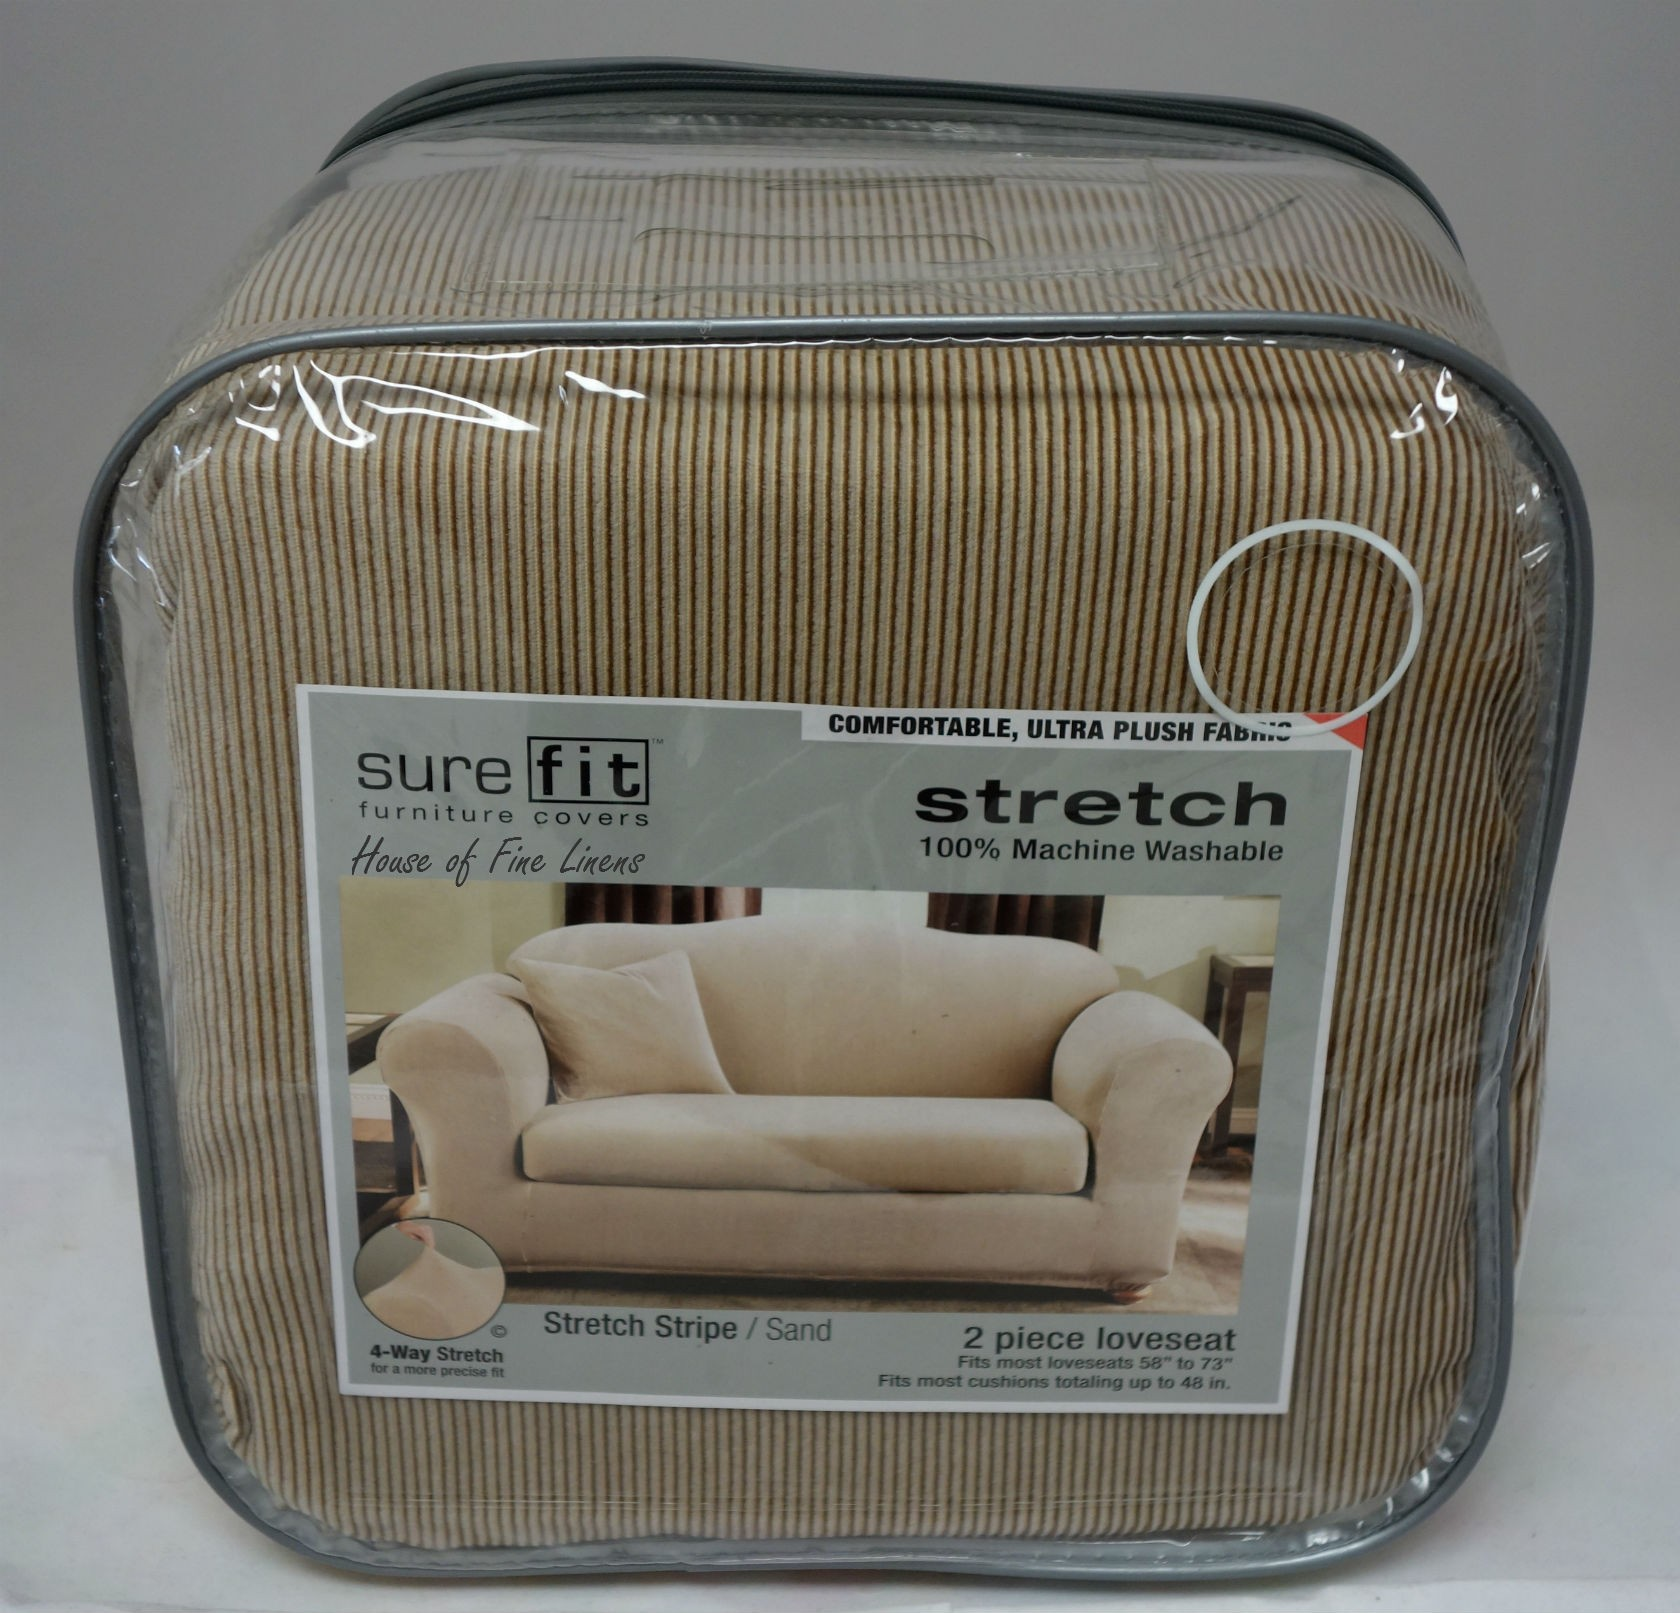 surefitStretch Stripe 2 Piece Loveseat Slipcover Sand for sofa cover ideas